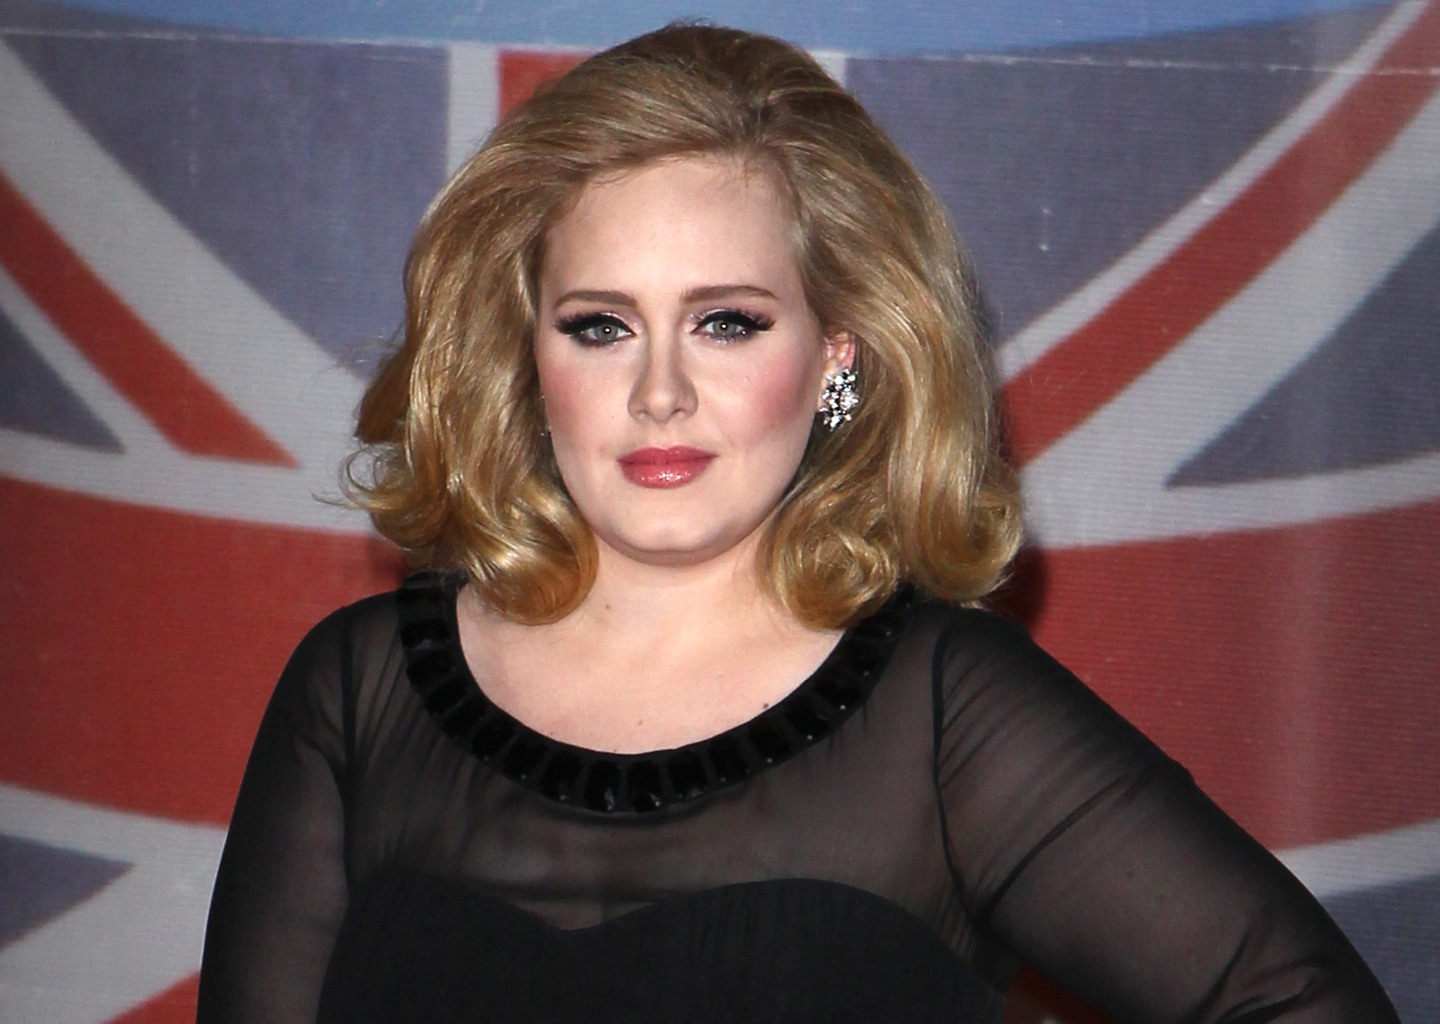 Hear Two Gorgeous Unreleased Adele Songs to Hold You Over Until Her New Album